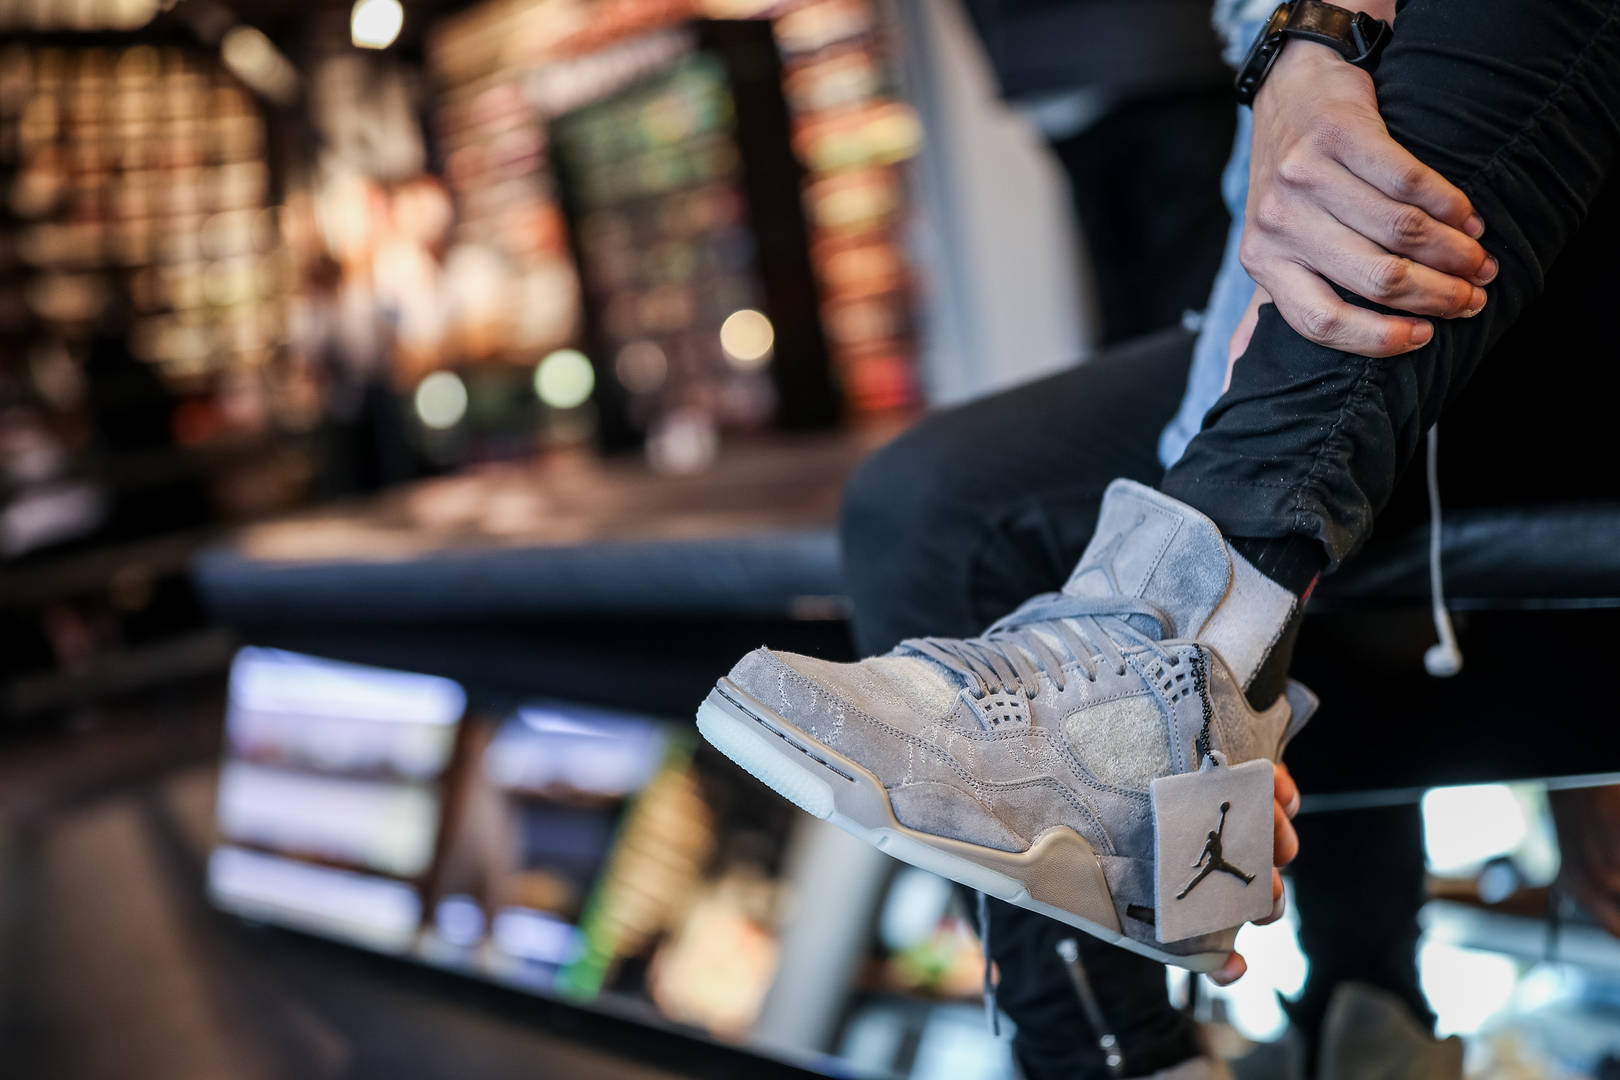 5 Reasons Why Copping Sneakers Has Become A Nightmare